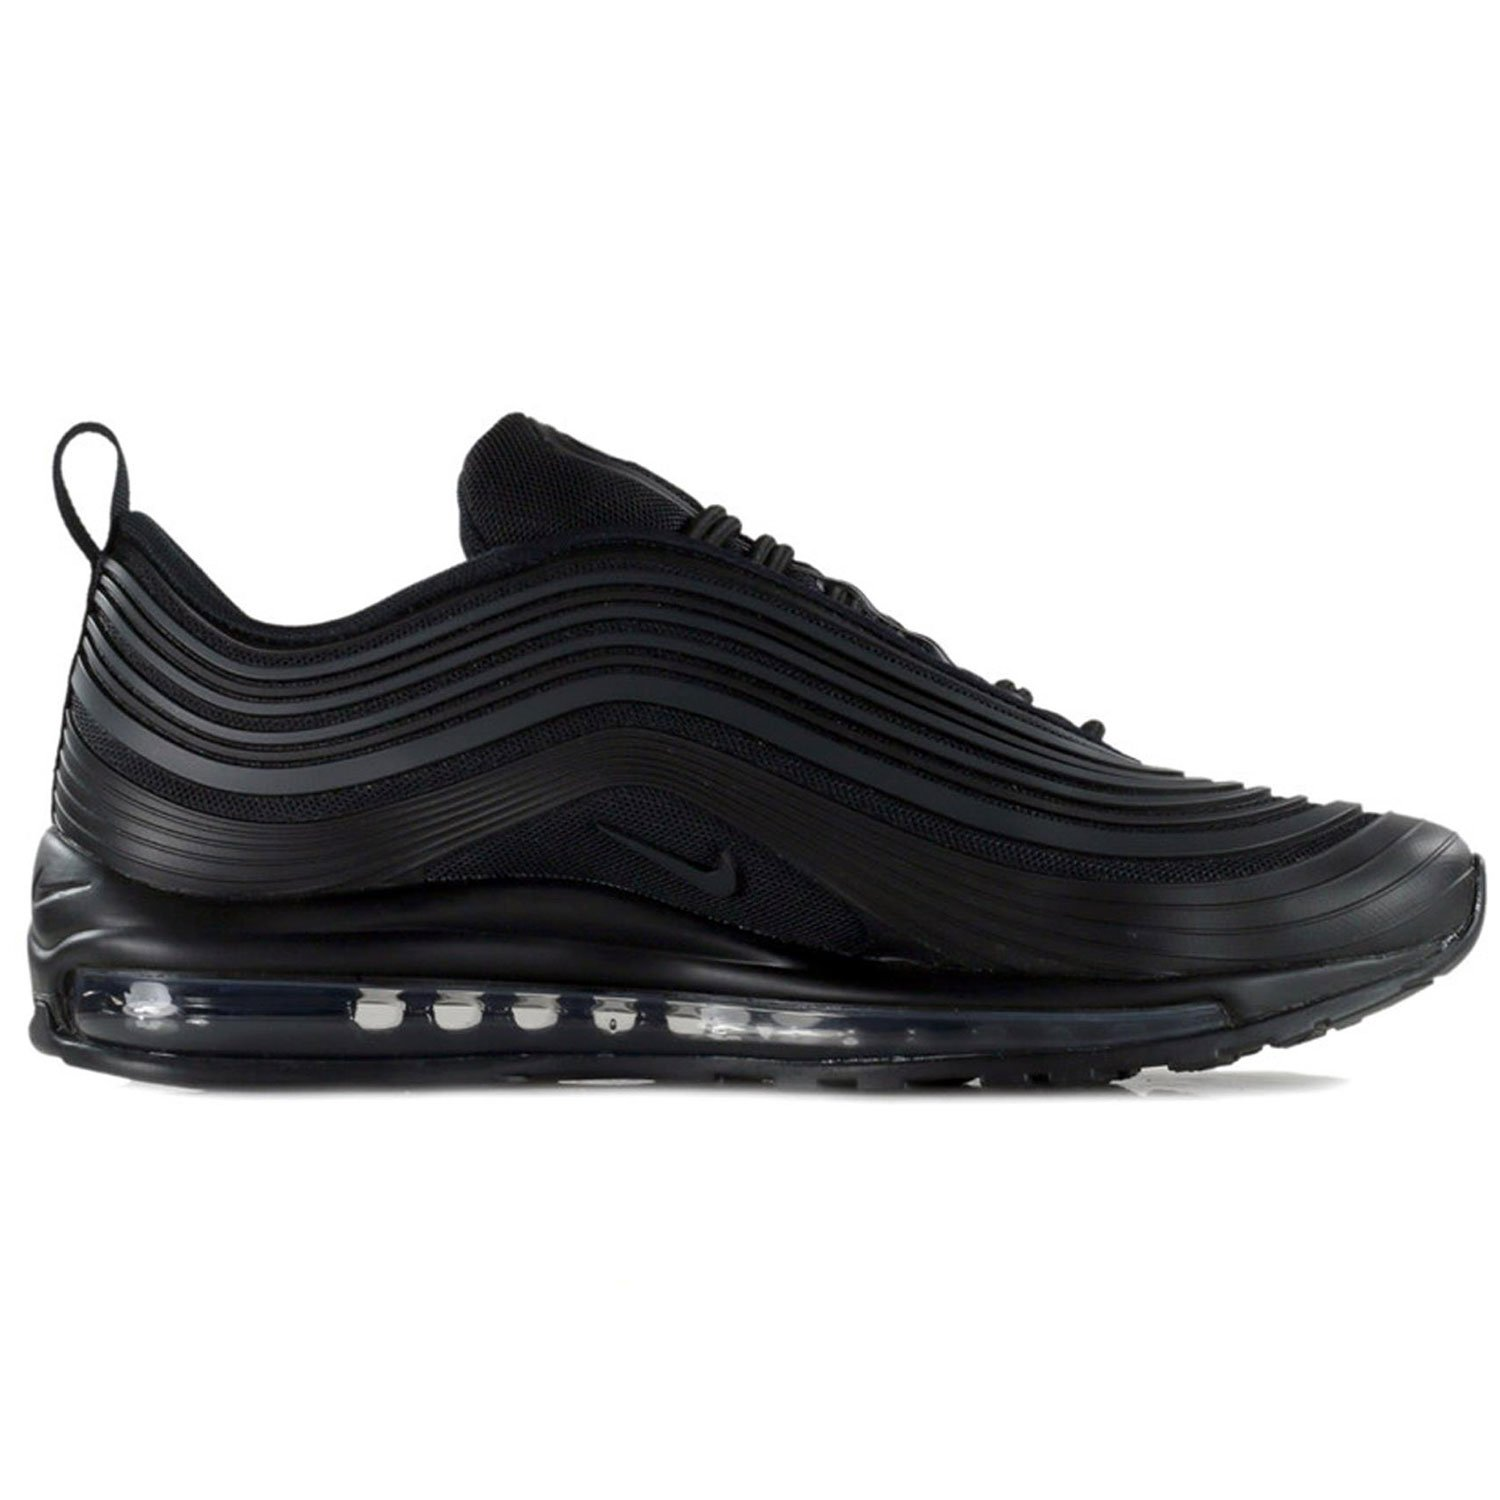 | Nike Air Max 97 Ultra '17 Men's Shoes Size 8.5